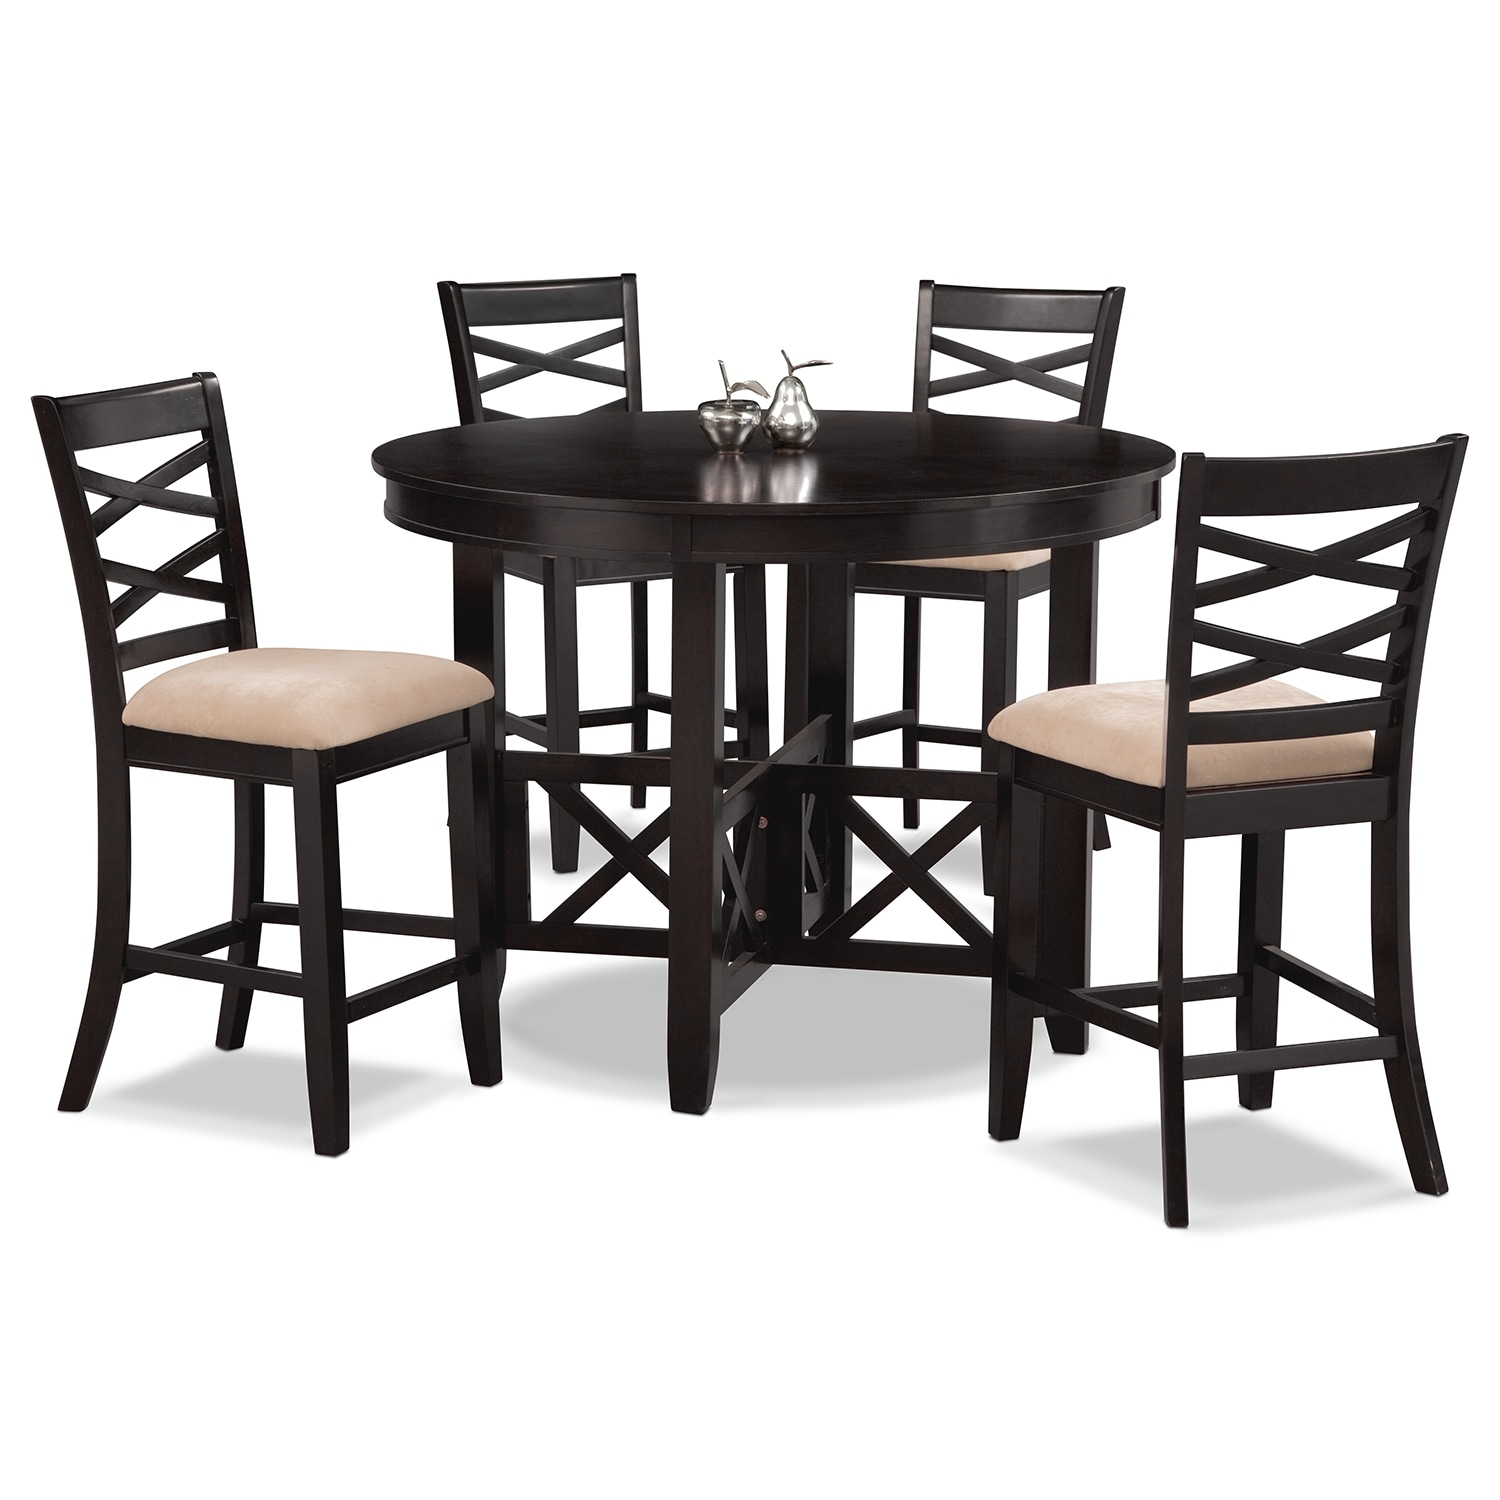 Americana Espresso 5 Pc. Counter-Height Dinette